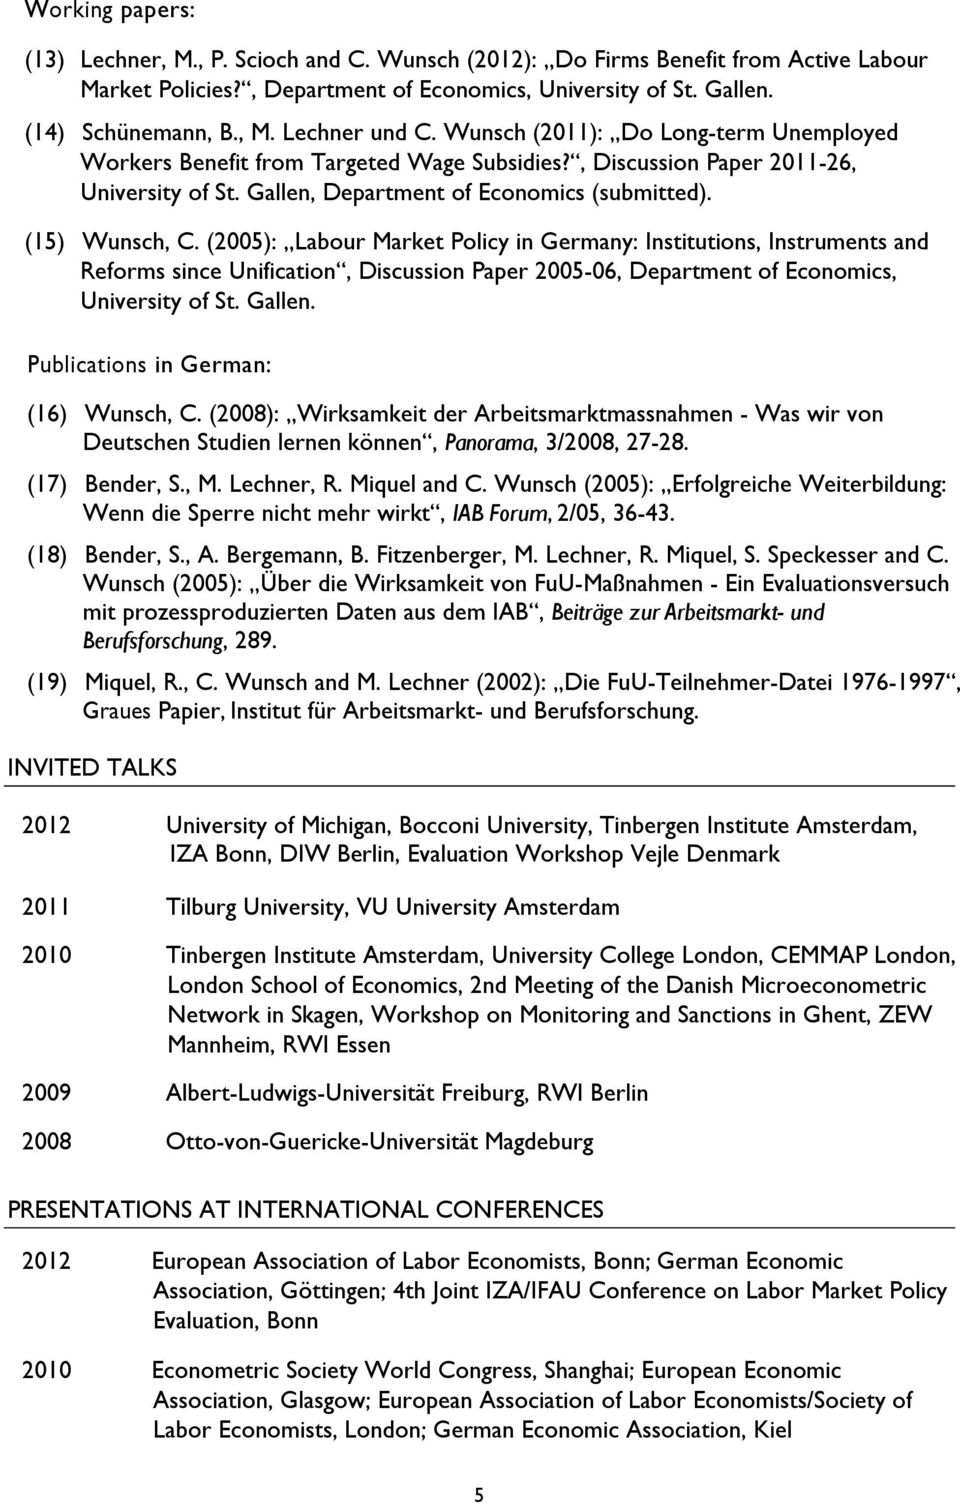 (2005): Labour Market Policy in Germany: Institutions, Instruments and Reforms since Unification, Discussion Paper 2005-06, Department of Economics, University of St. Gallen.